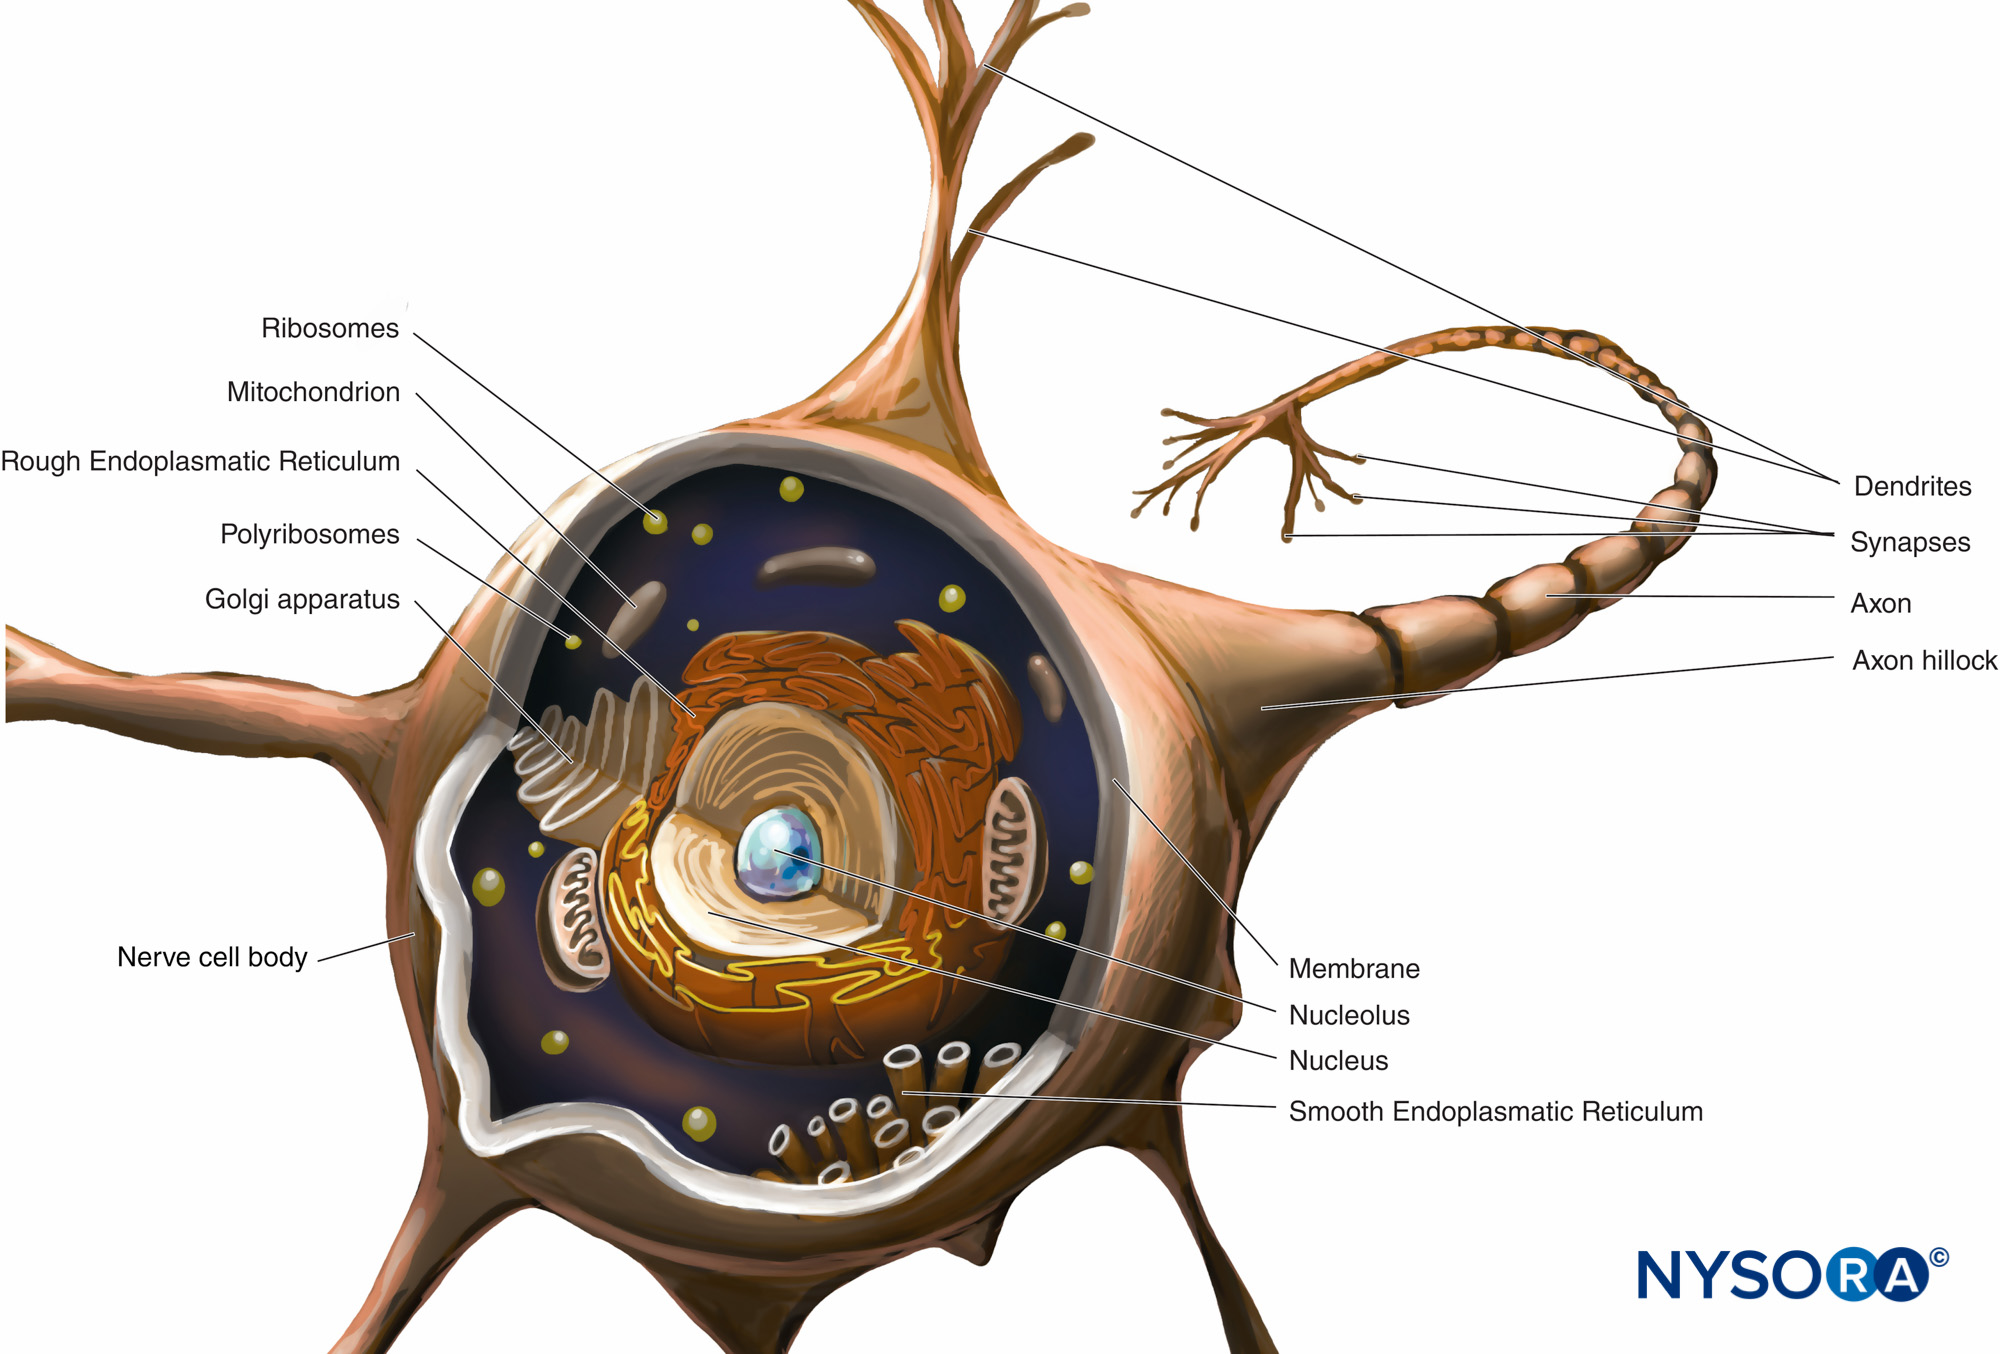 hight resolution of diagram of a multipolar neuron the nerve cell body dendrites and proximal part of the axon are within the cns the axons exiting the cns distal to